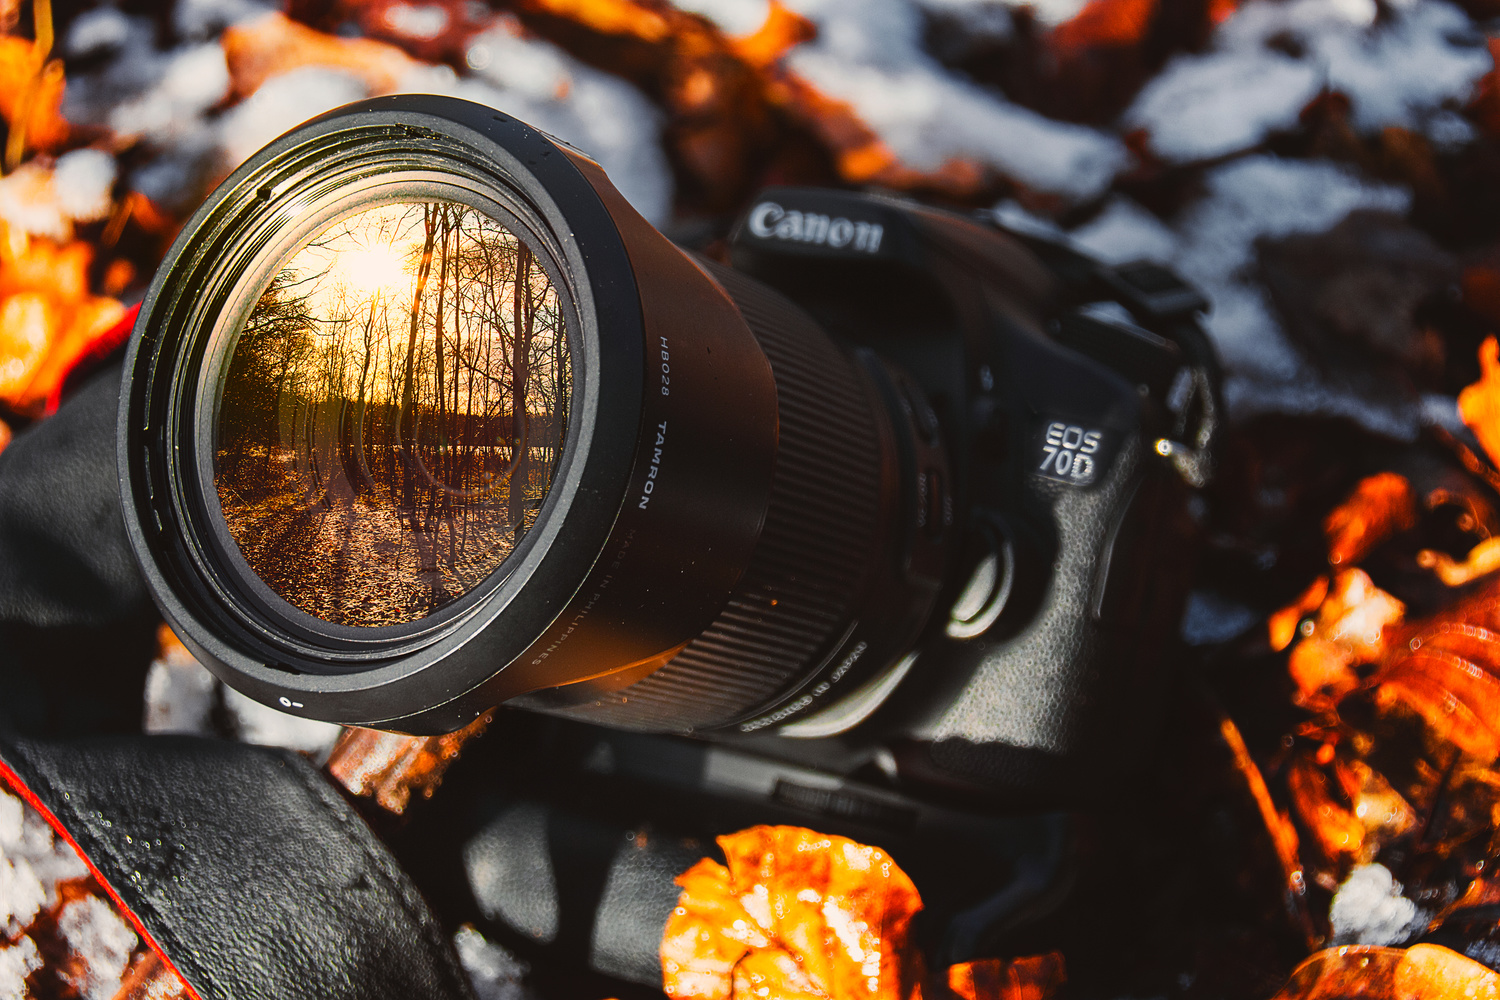 Canon 70d by nicky fredriksson